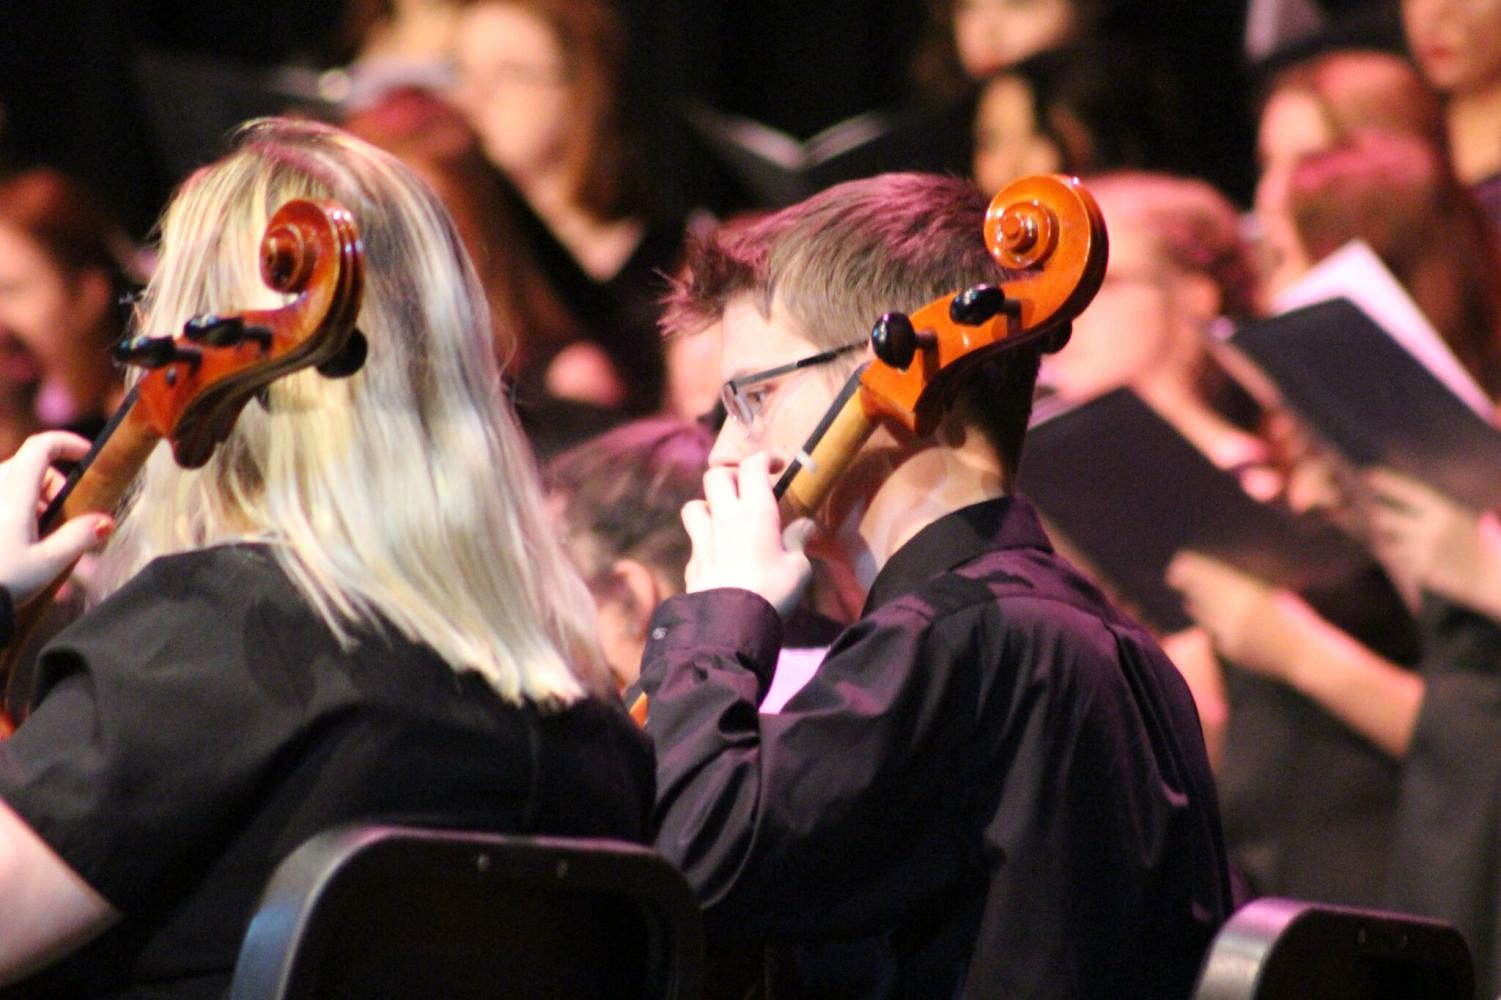 On December 4 the orchestra and choir had their annual winter concert.